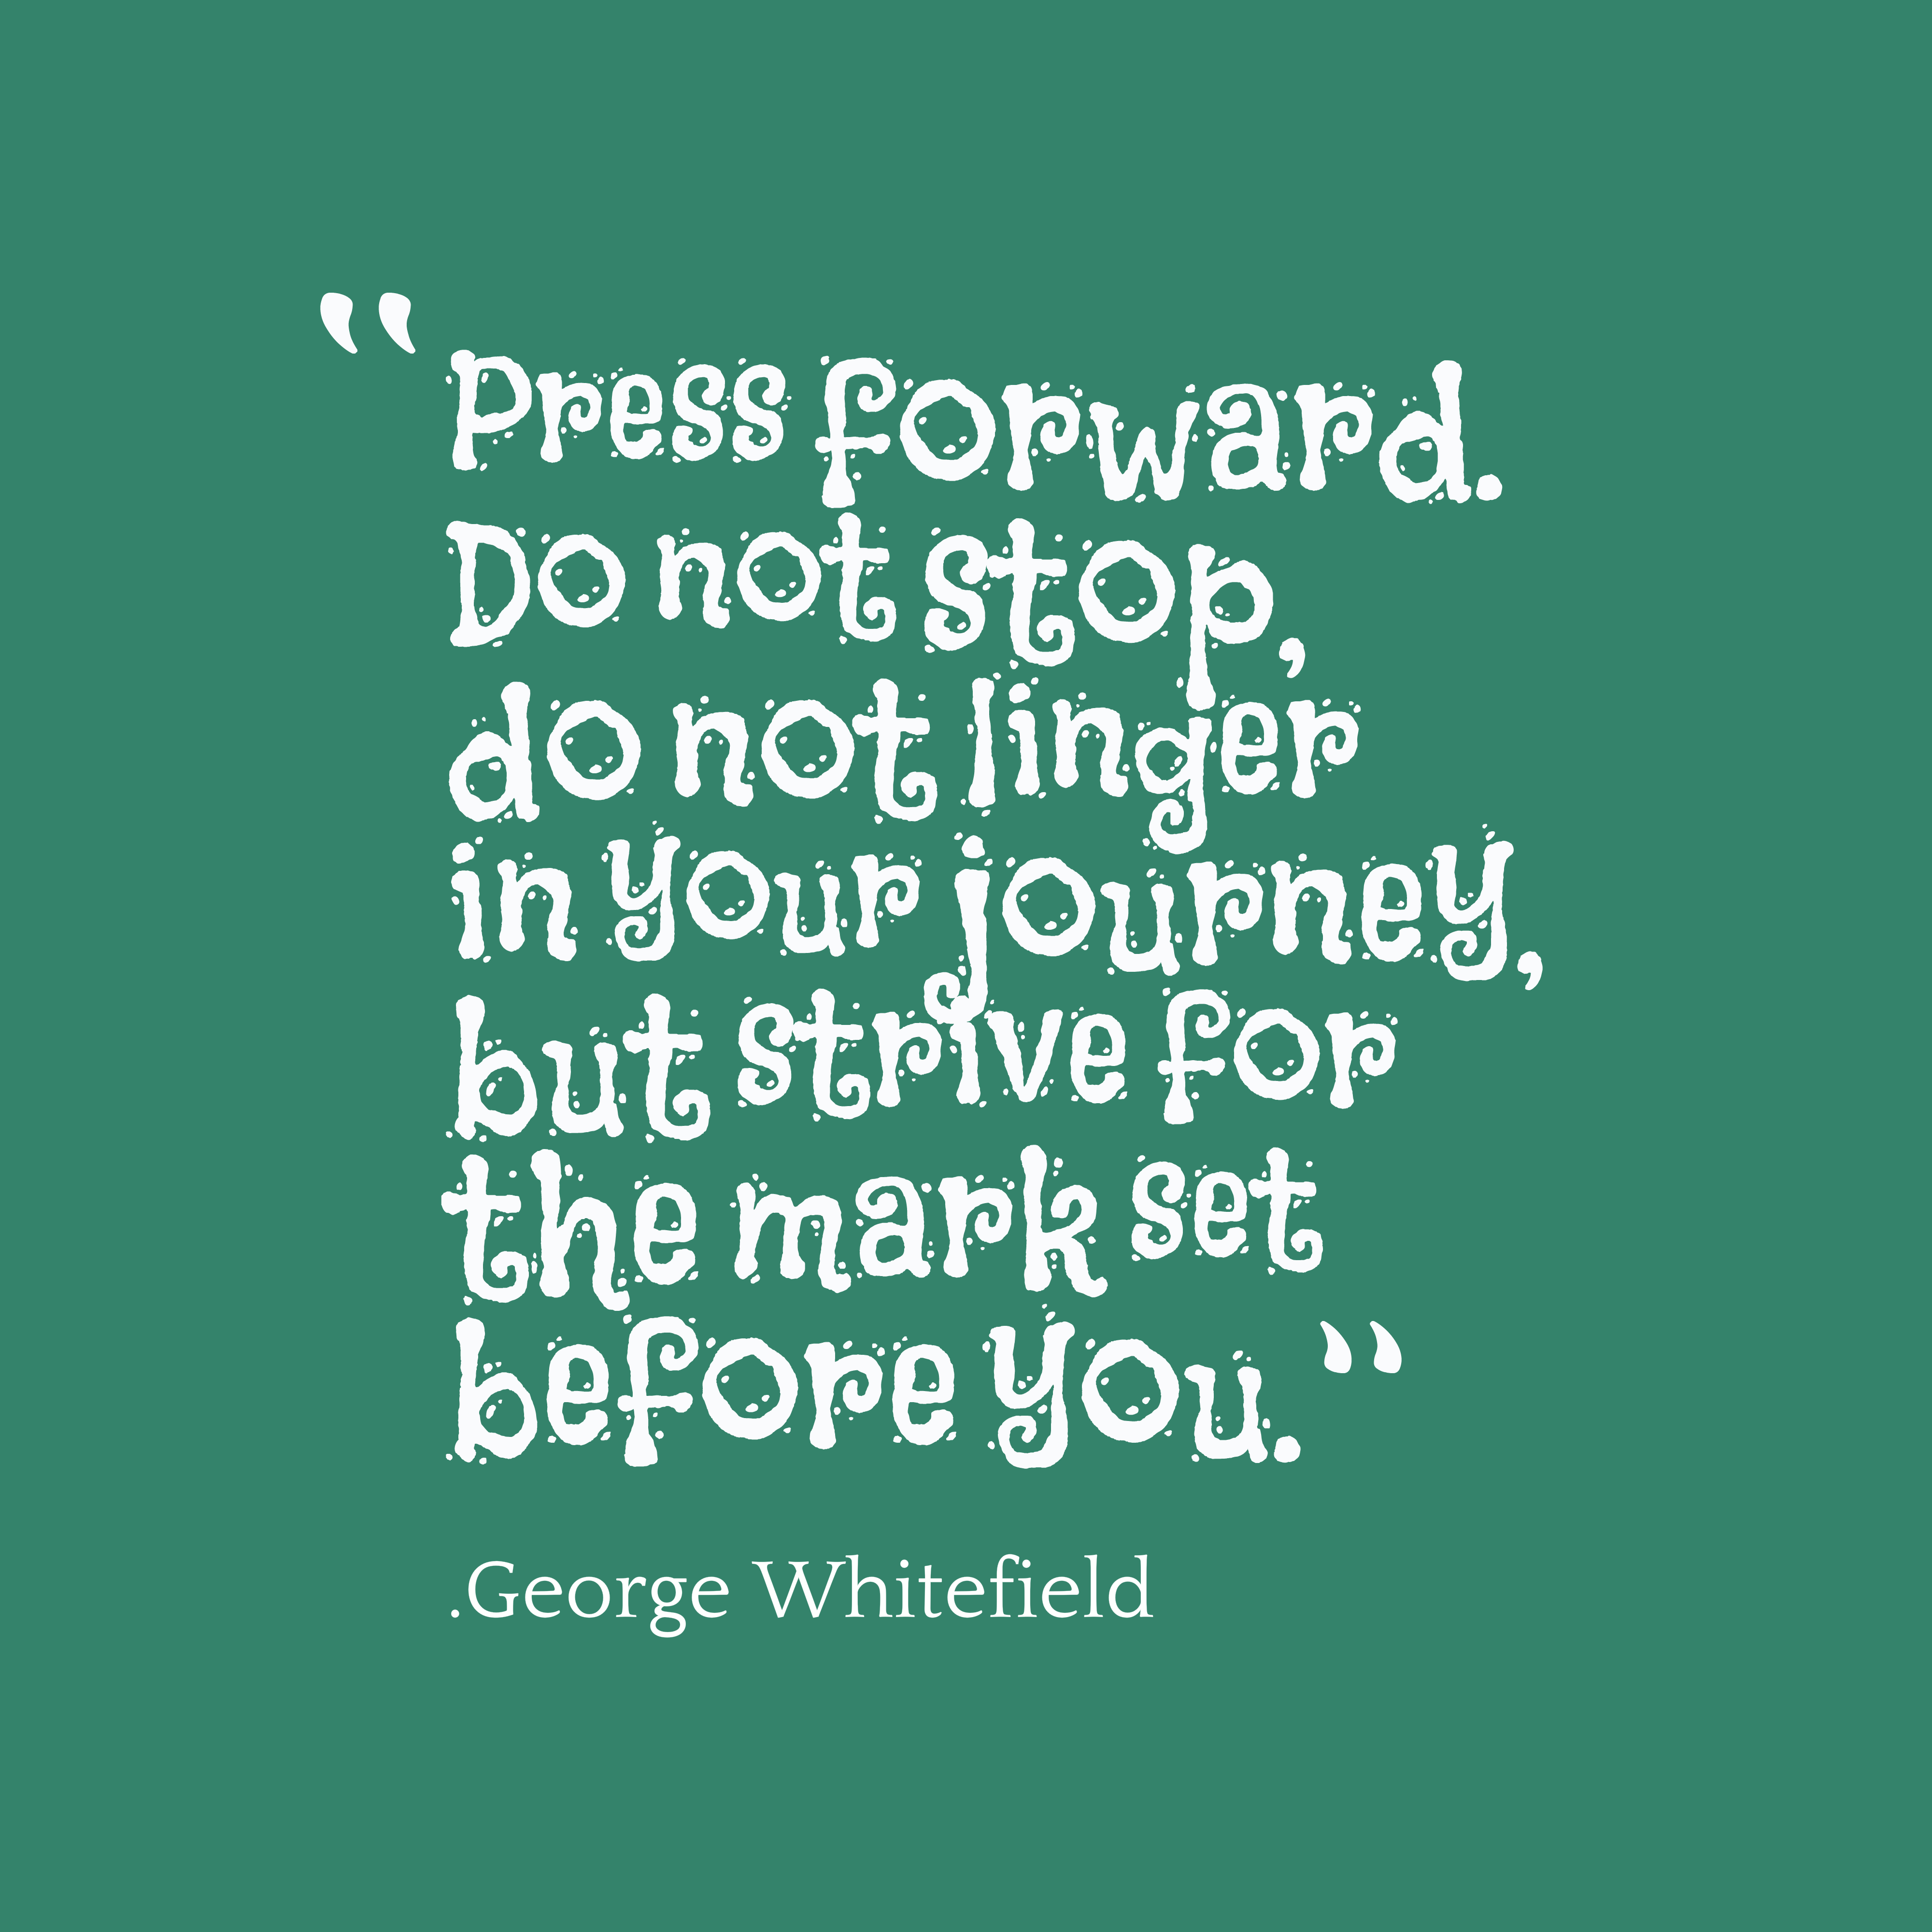 Press forward. Do not stop, do not linger in your journey, but strive for the mark set before you. George Whitefield